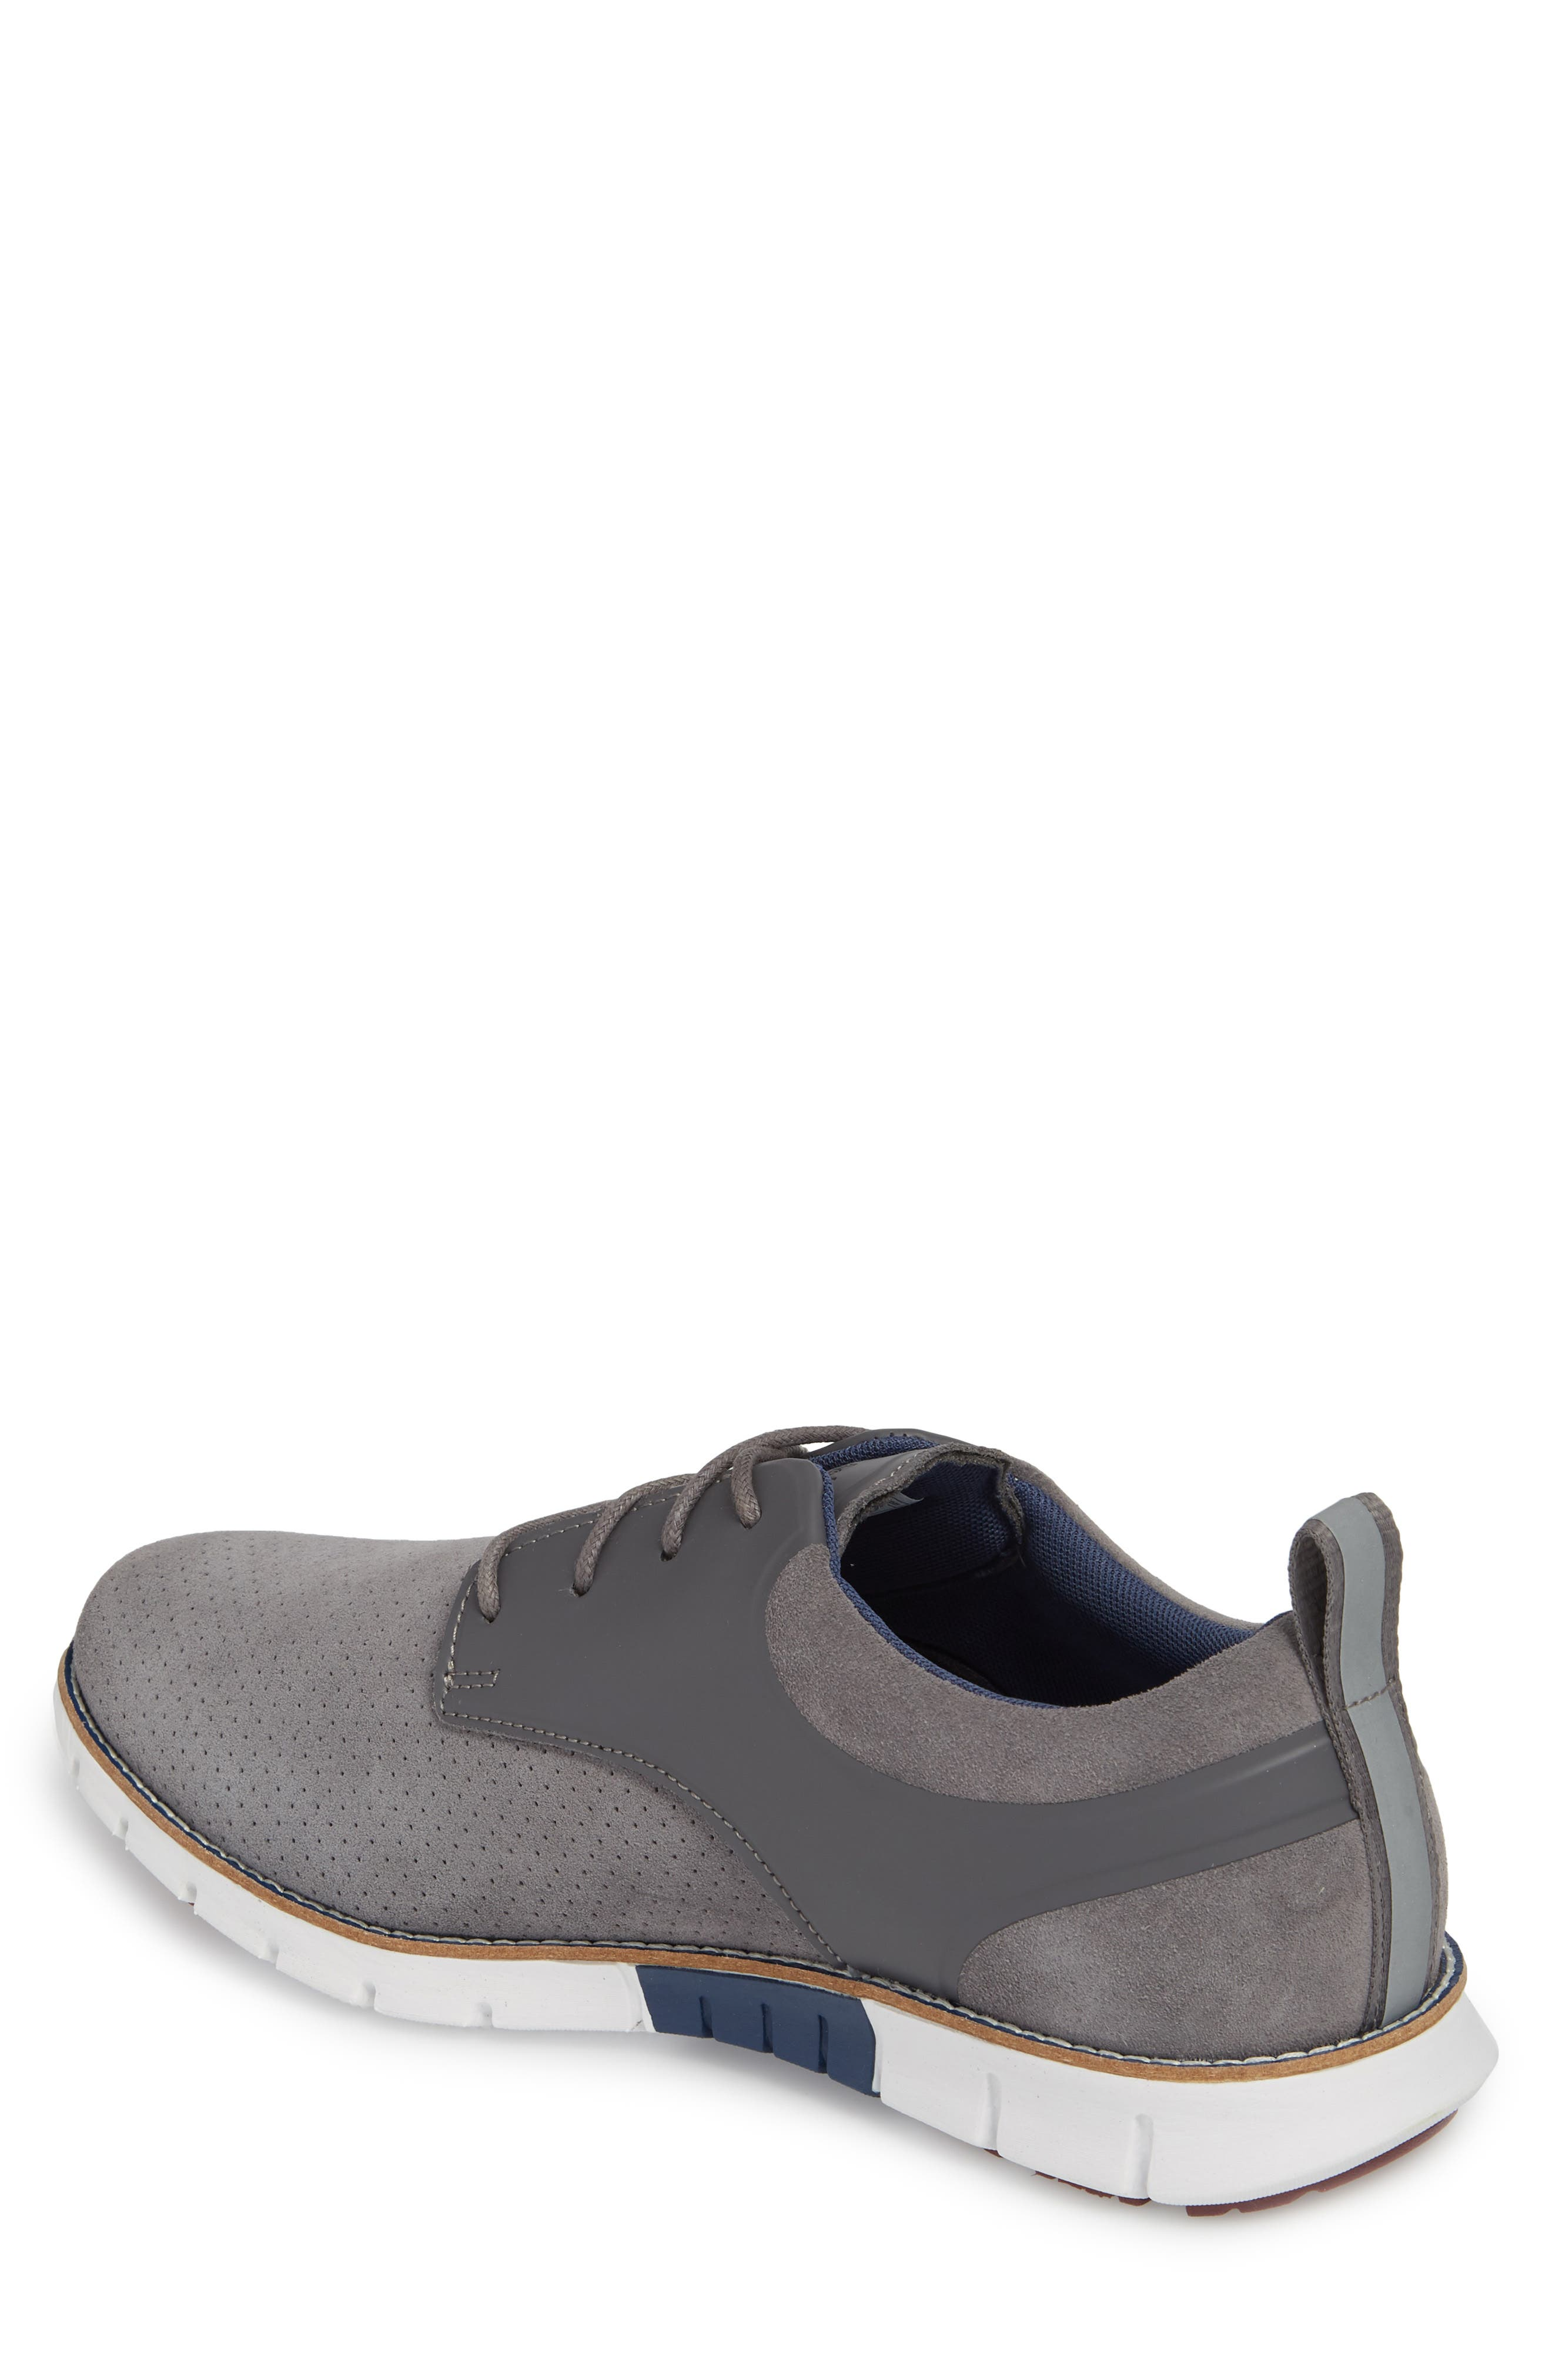 Ridley Perforated Low Top Sneaker,                             Alternate thumbnail 2, color,                             020